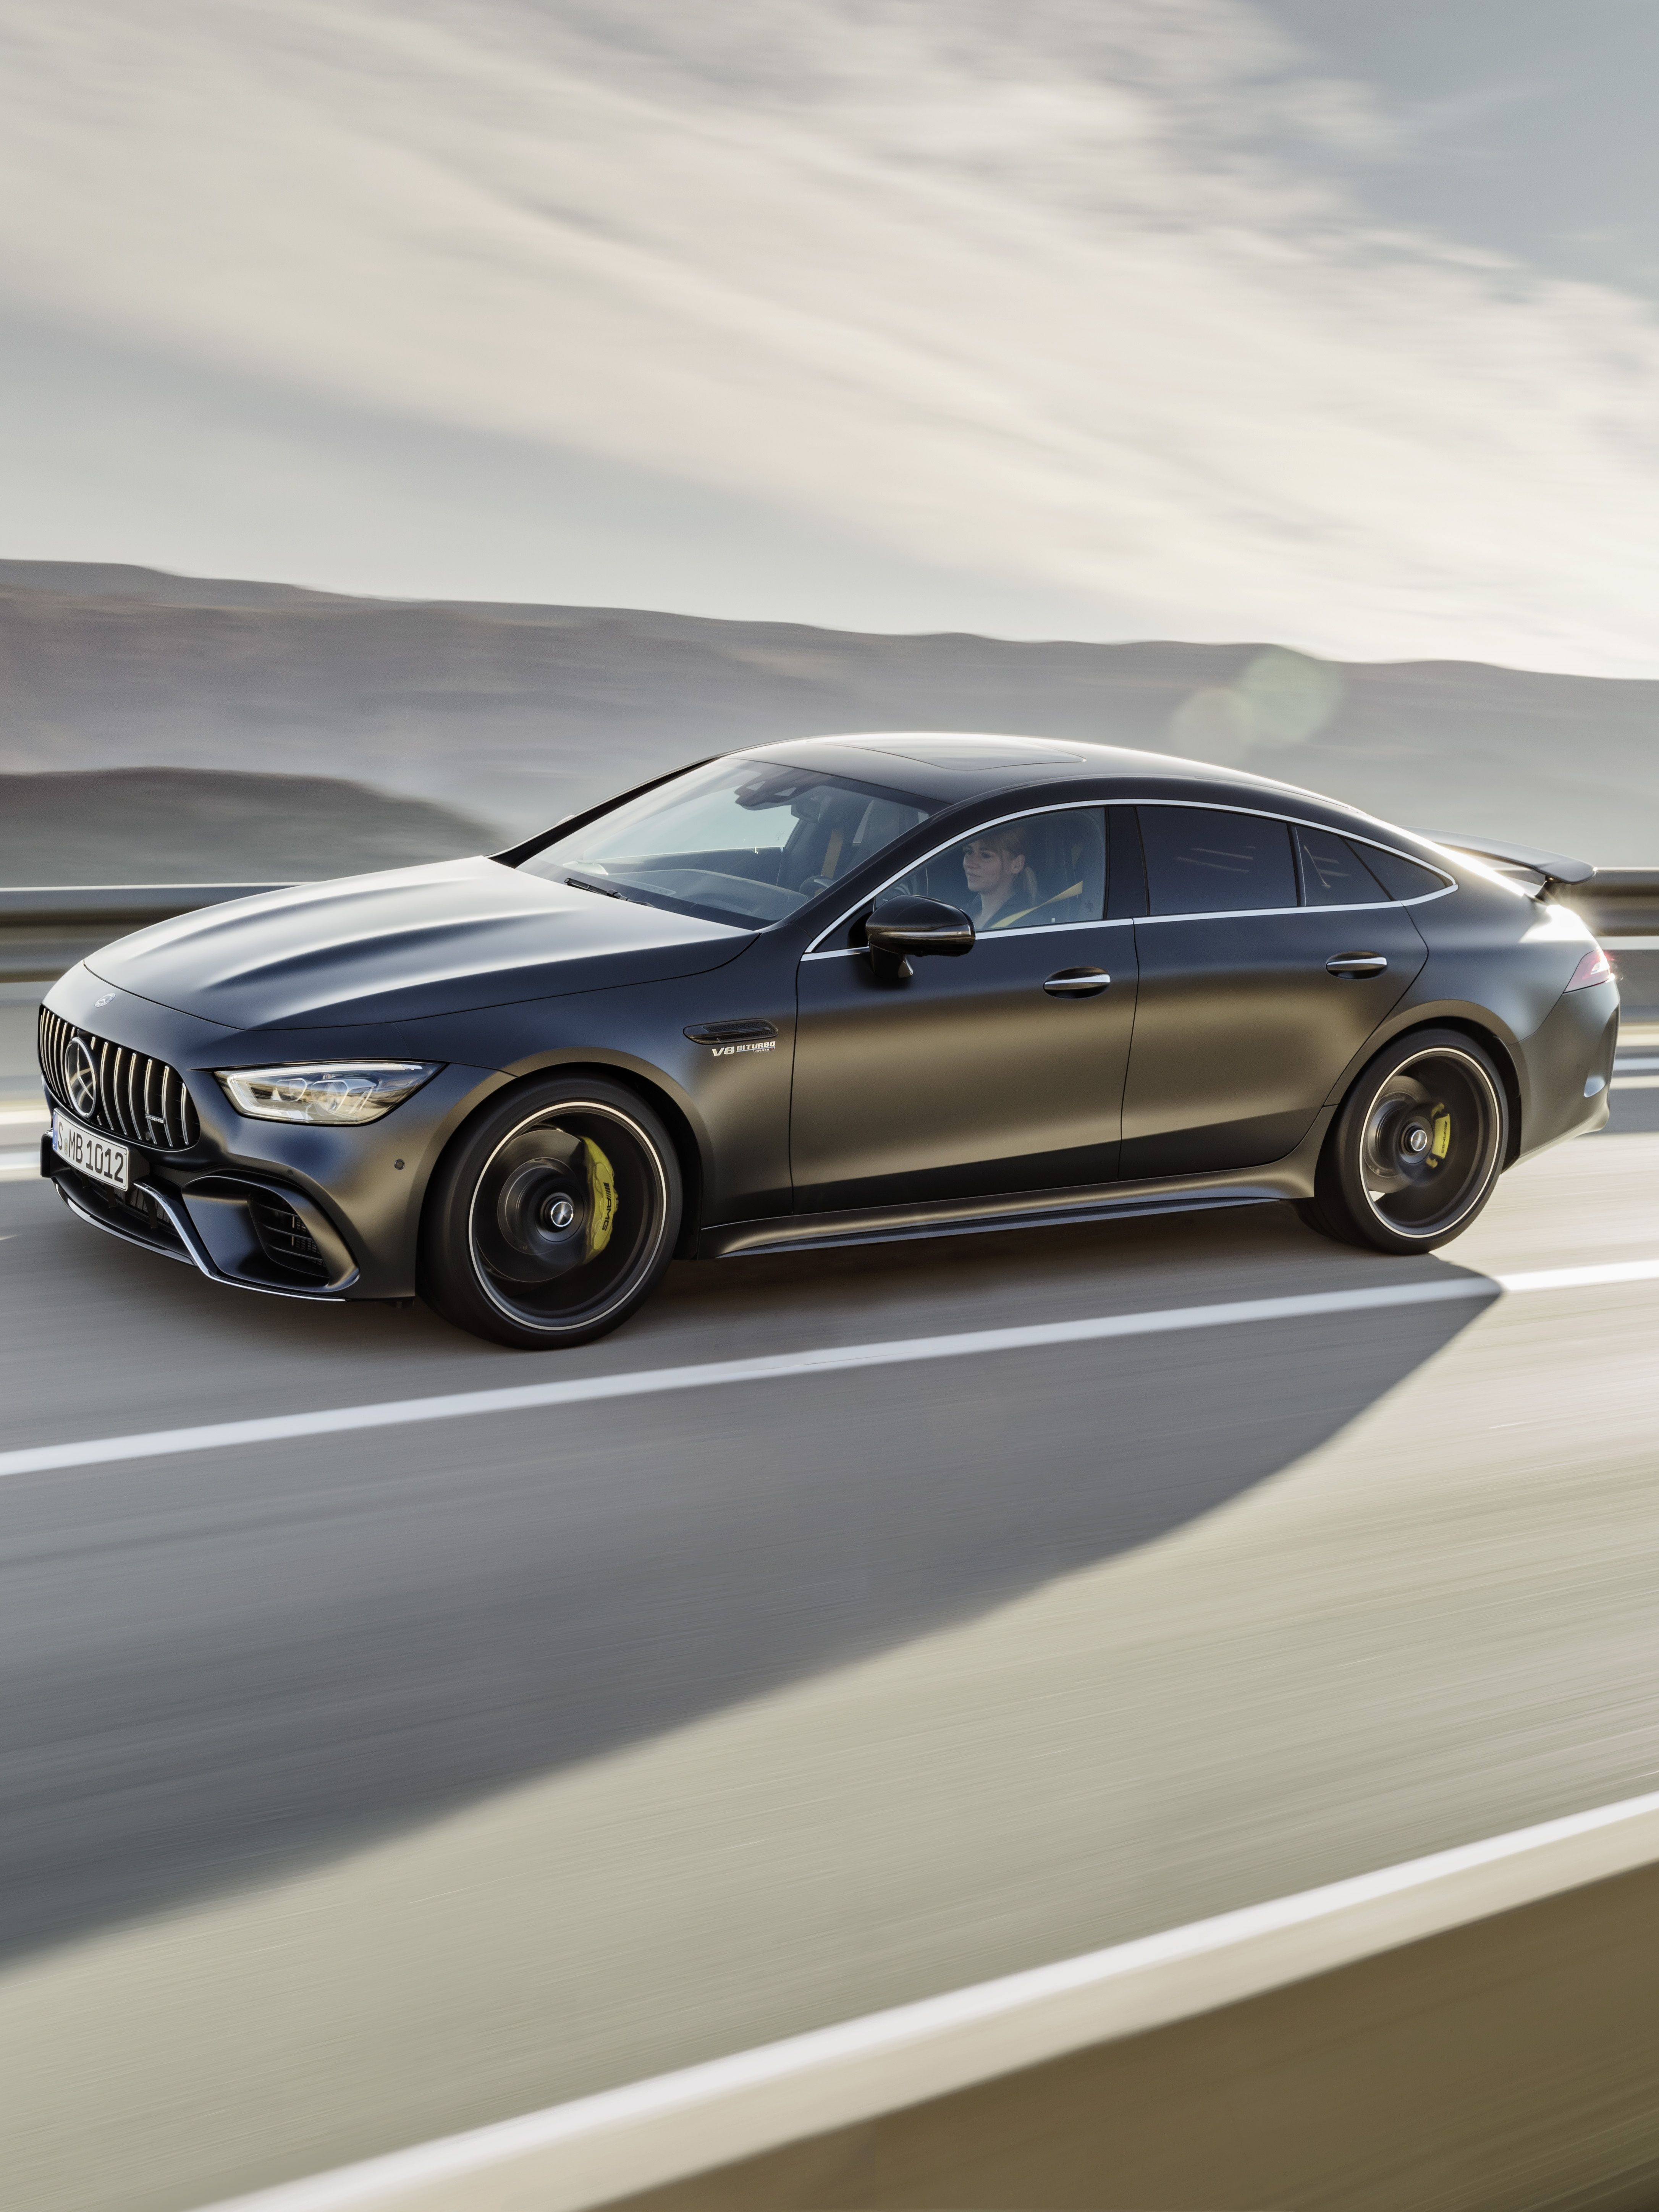 New Amg Gt 4 Door Coupe 2018 With Images Amg Coupe Mercedes Amg